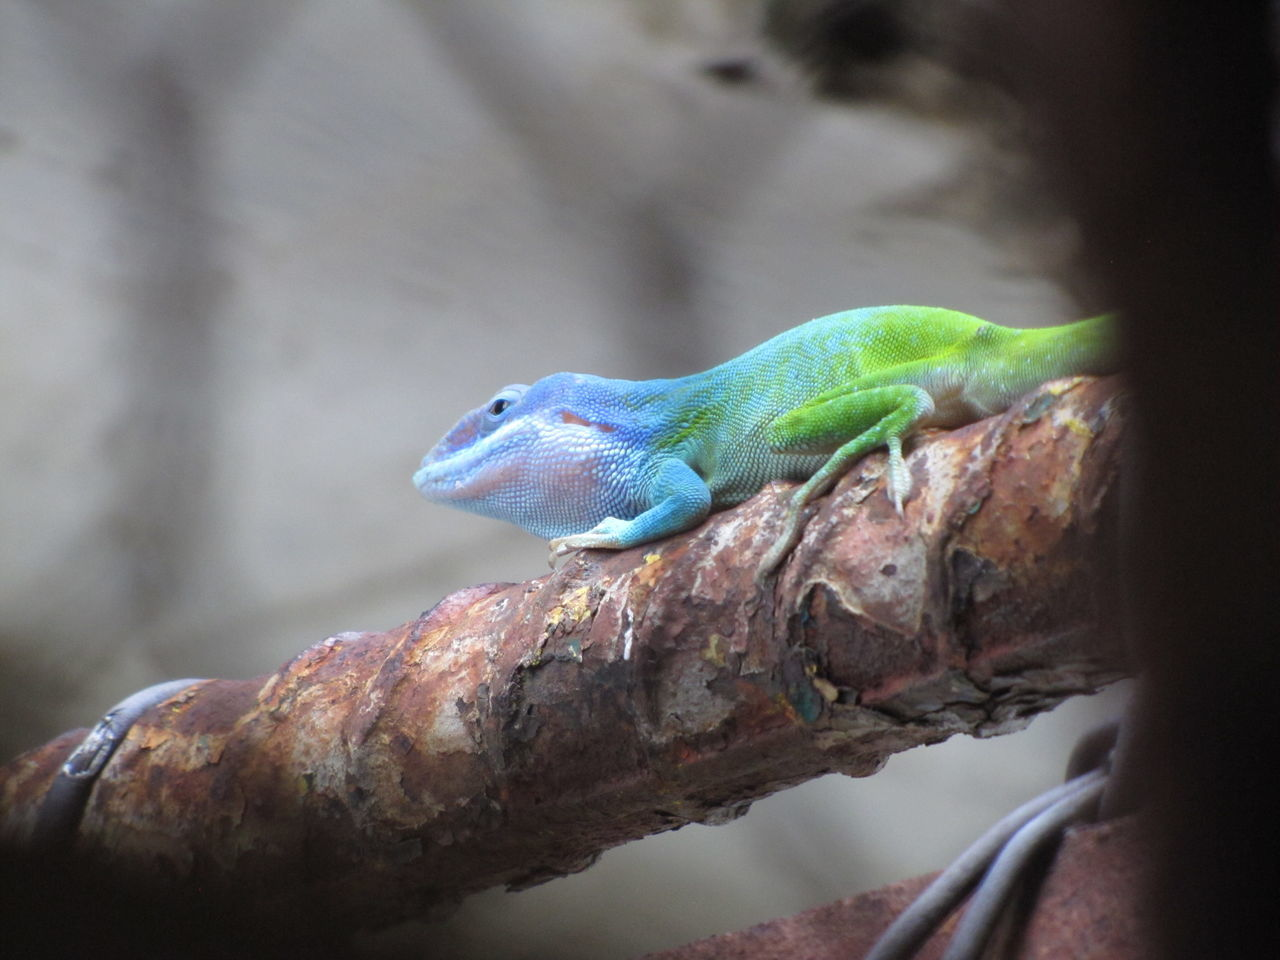 animals in the wild, lizard, one animal, animal themes, animal wildlife, close-up, day, no people, reptile, outdoors, perching, nature, chameleon, branch, bird